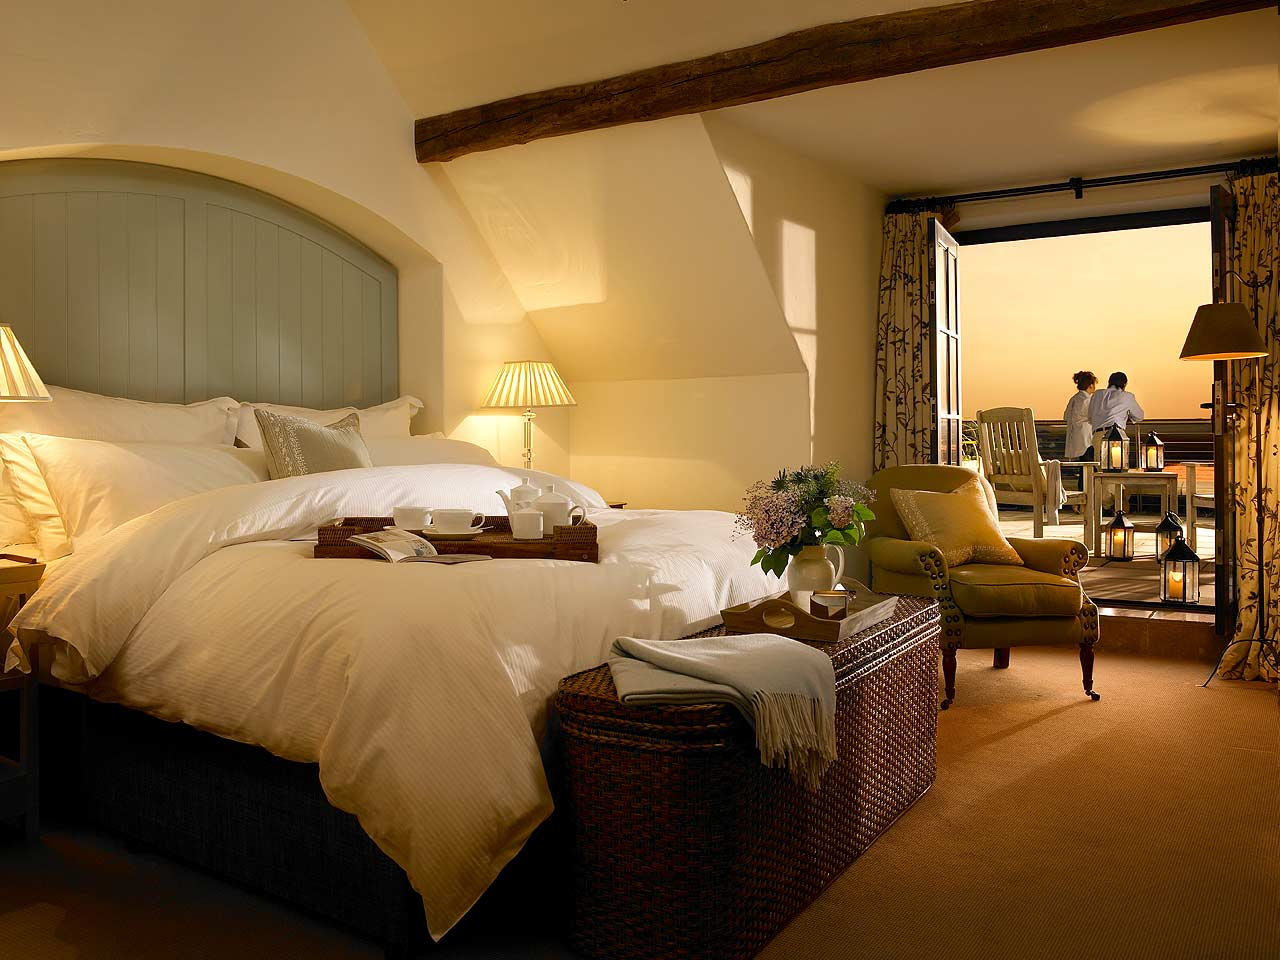 Lodge at doonbeg county clare ireland luxandtravel for Top luxury hotels